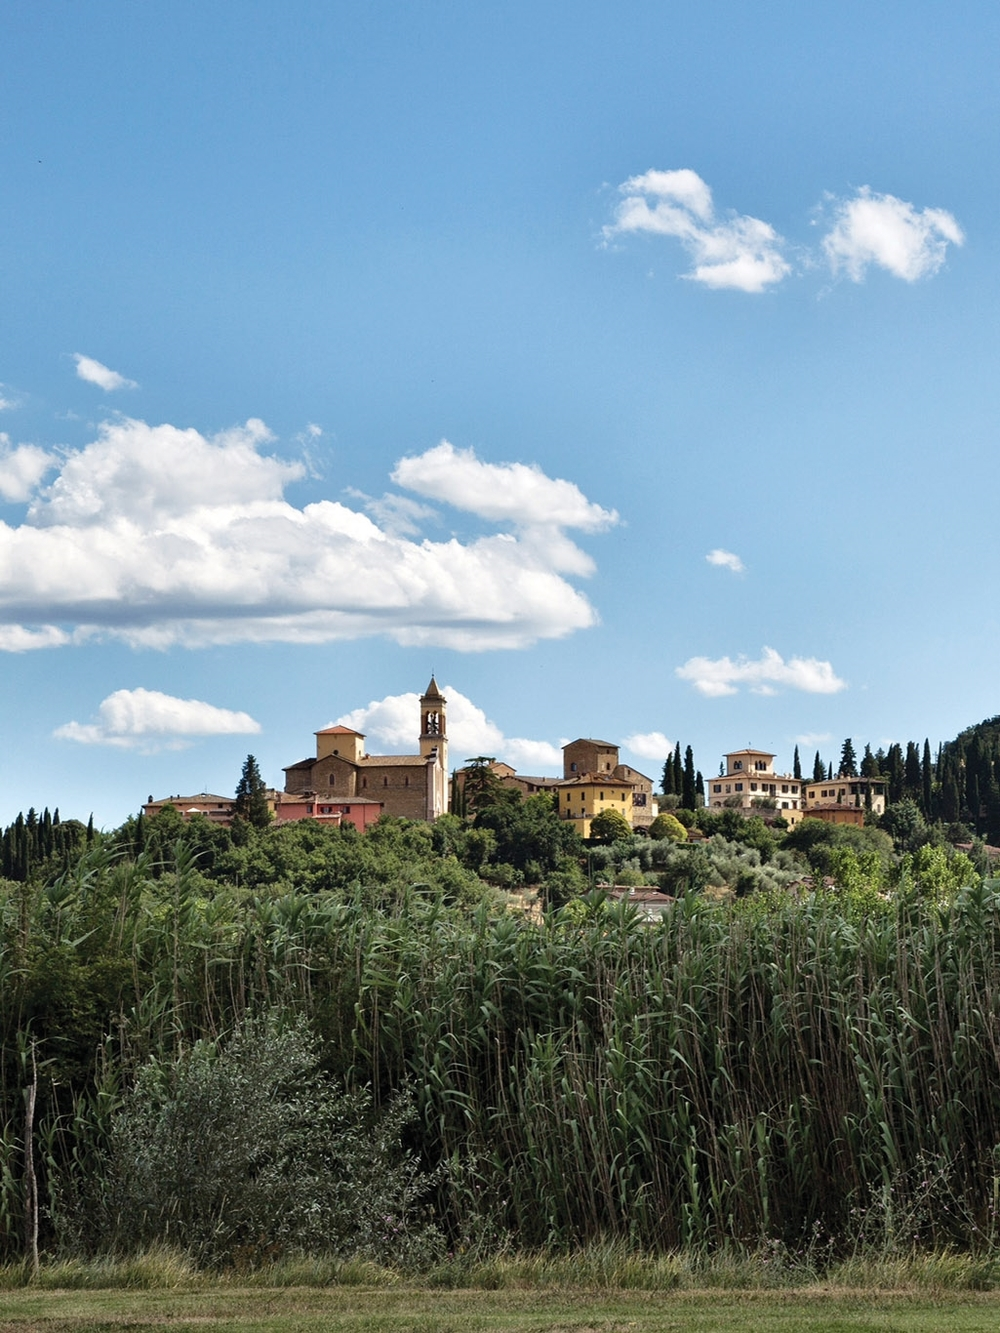 Solomeo is now home to 600 villagers, mostly employed by Brunello Cucinelli in his factory, or flagship store.